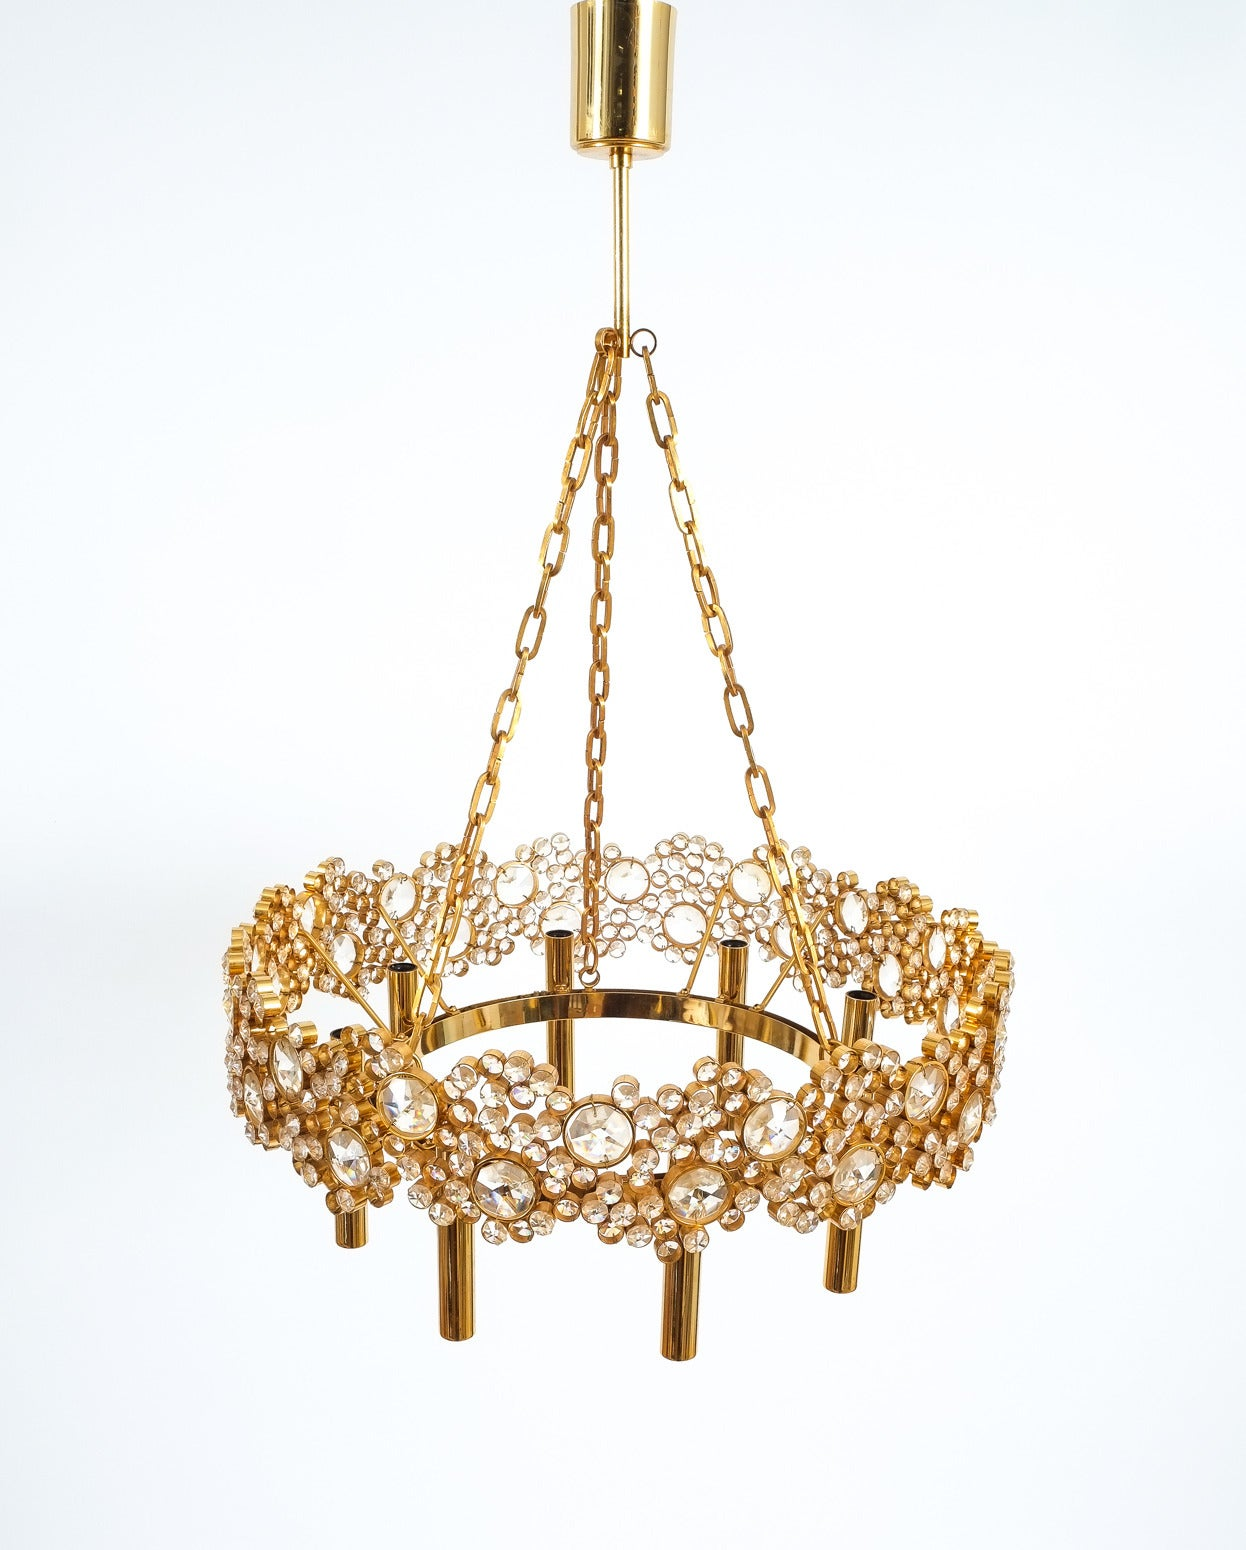 German Large Gilt Brass and Glass Chandelier Lamp, Palwa circa 1960 For Sale